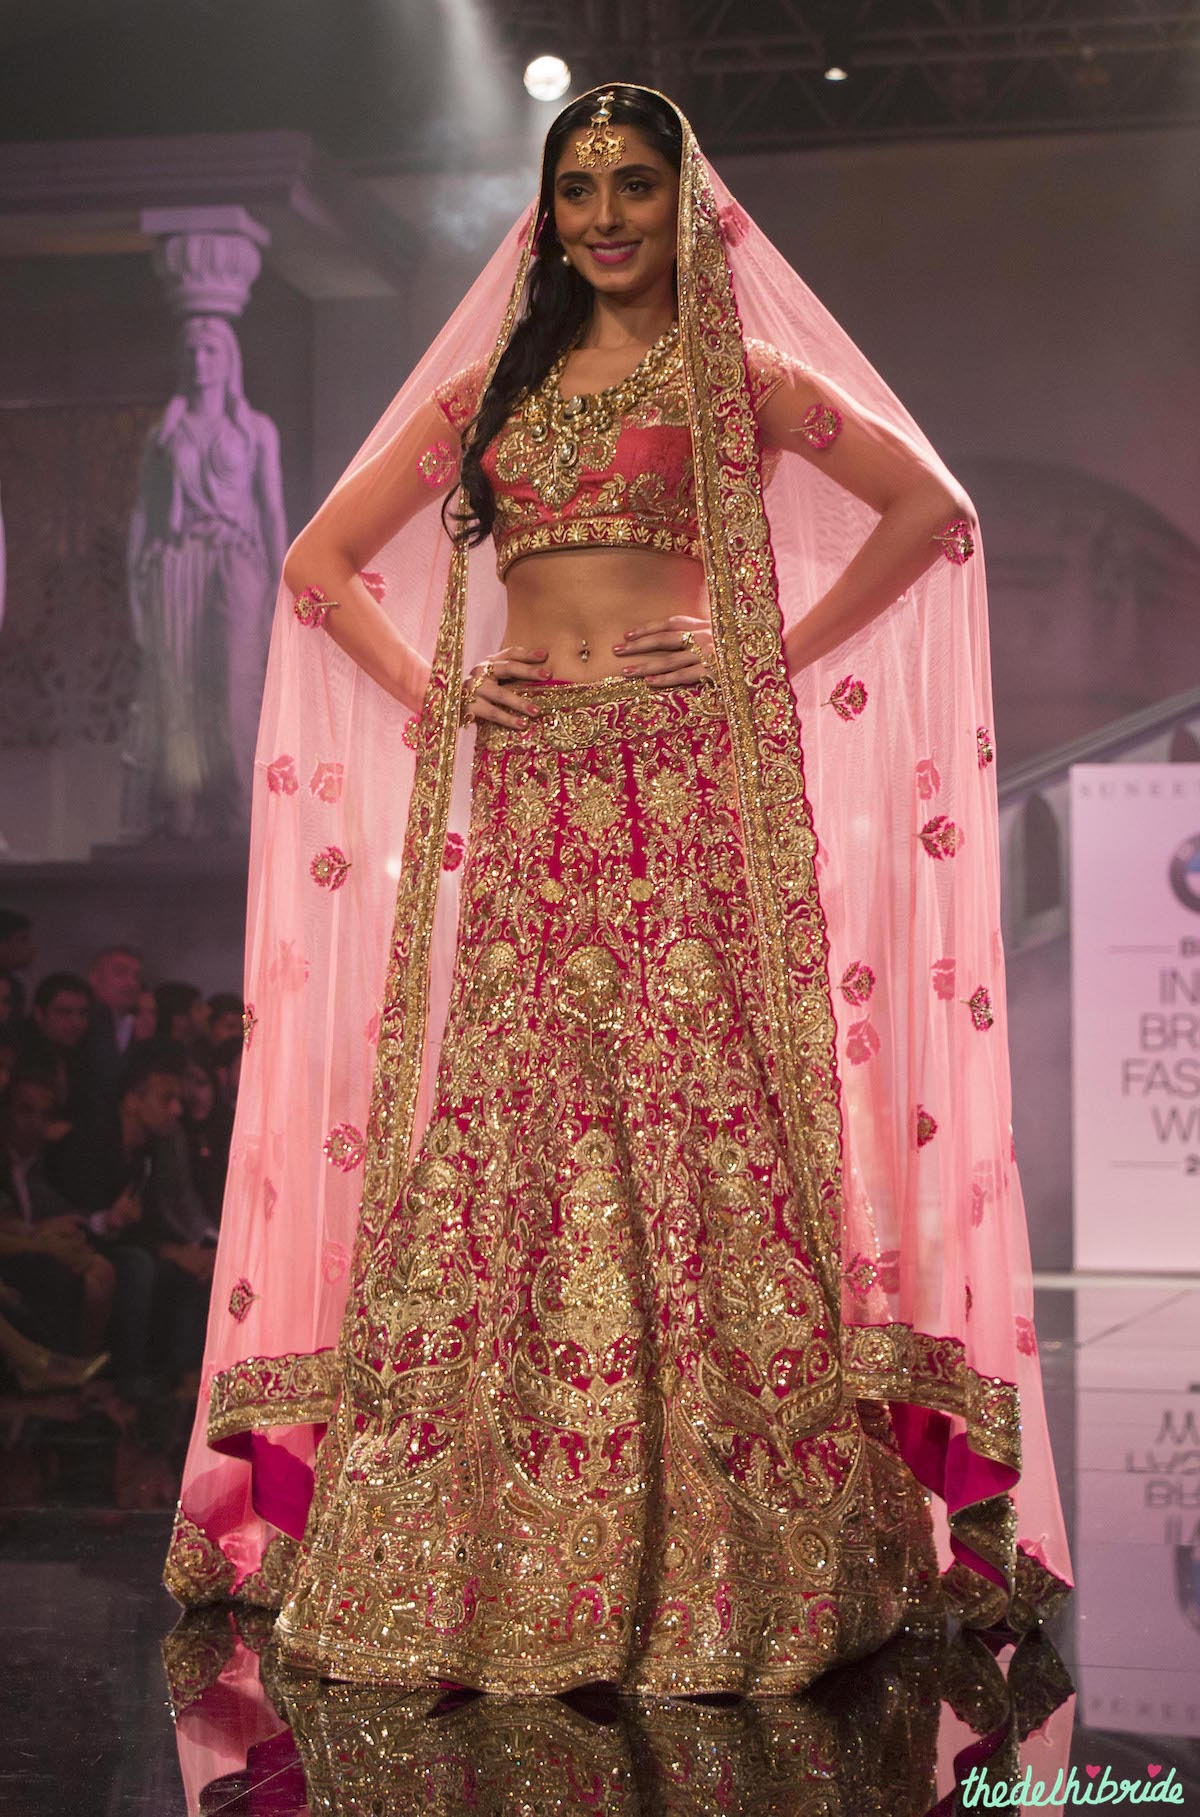 Pink And Gold Indian Wedding Dress \u2013 Pemerintah Kota Ambon